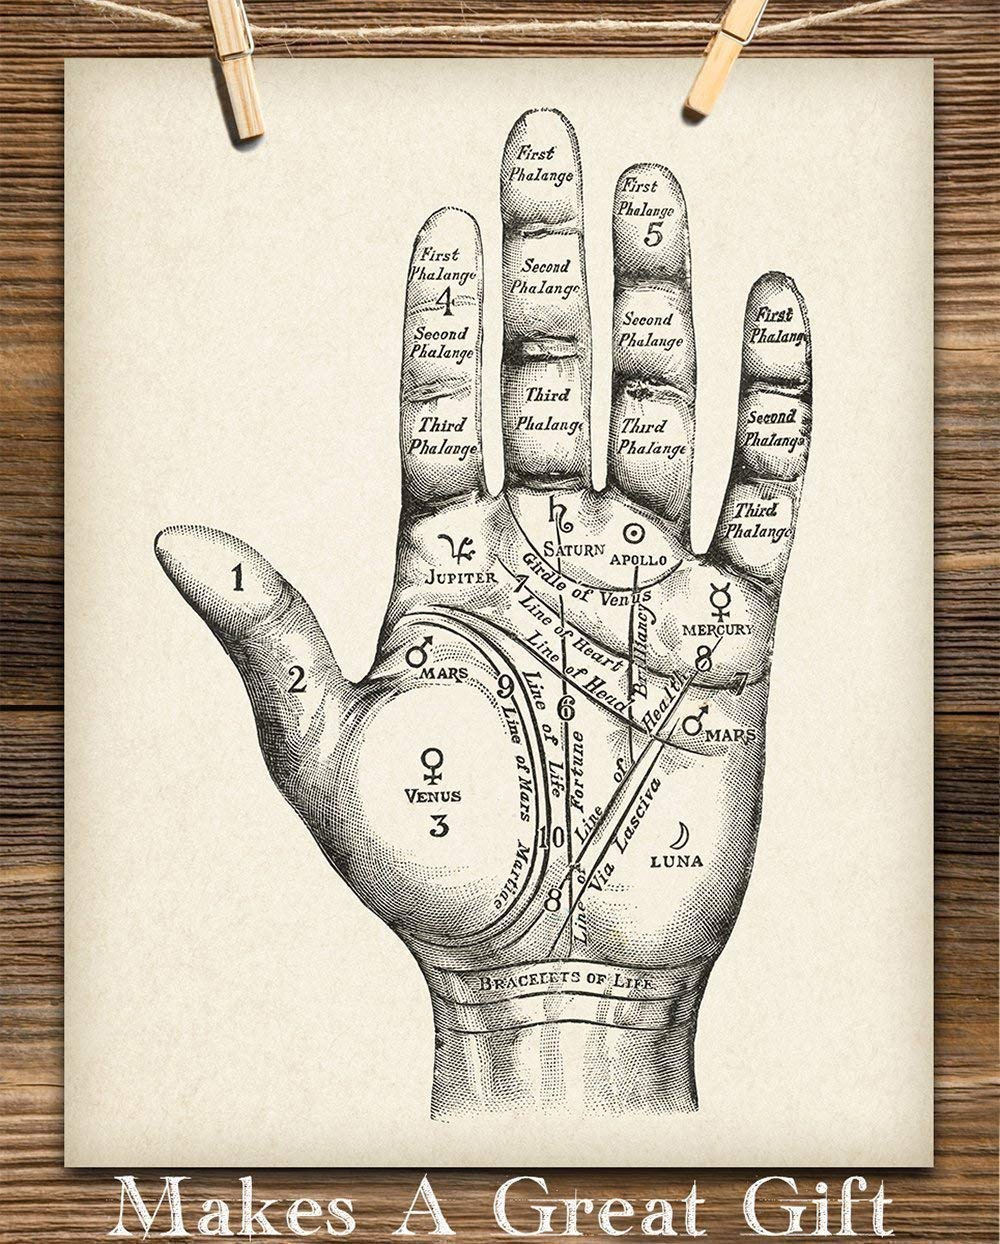 Amazon Com Vintage Palm Reading Chart 11x14 Unframed Art Print Great Decor And Gift For Fans Of Palmistry And Astrology Under 15 Handmade